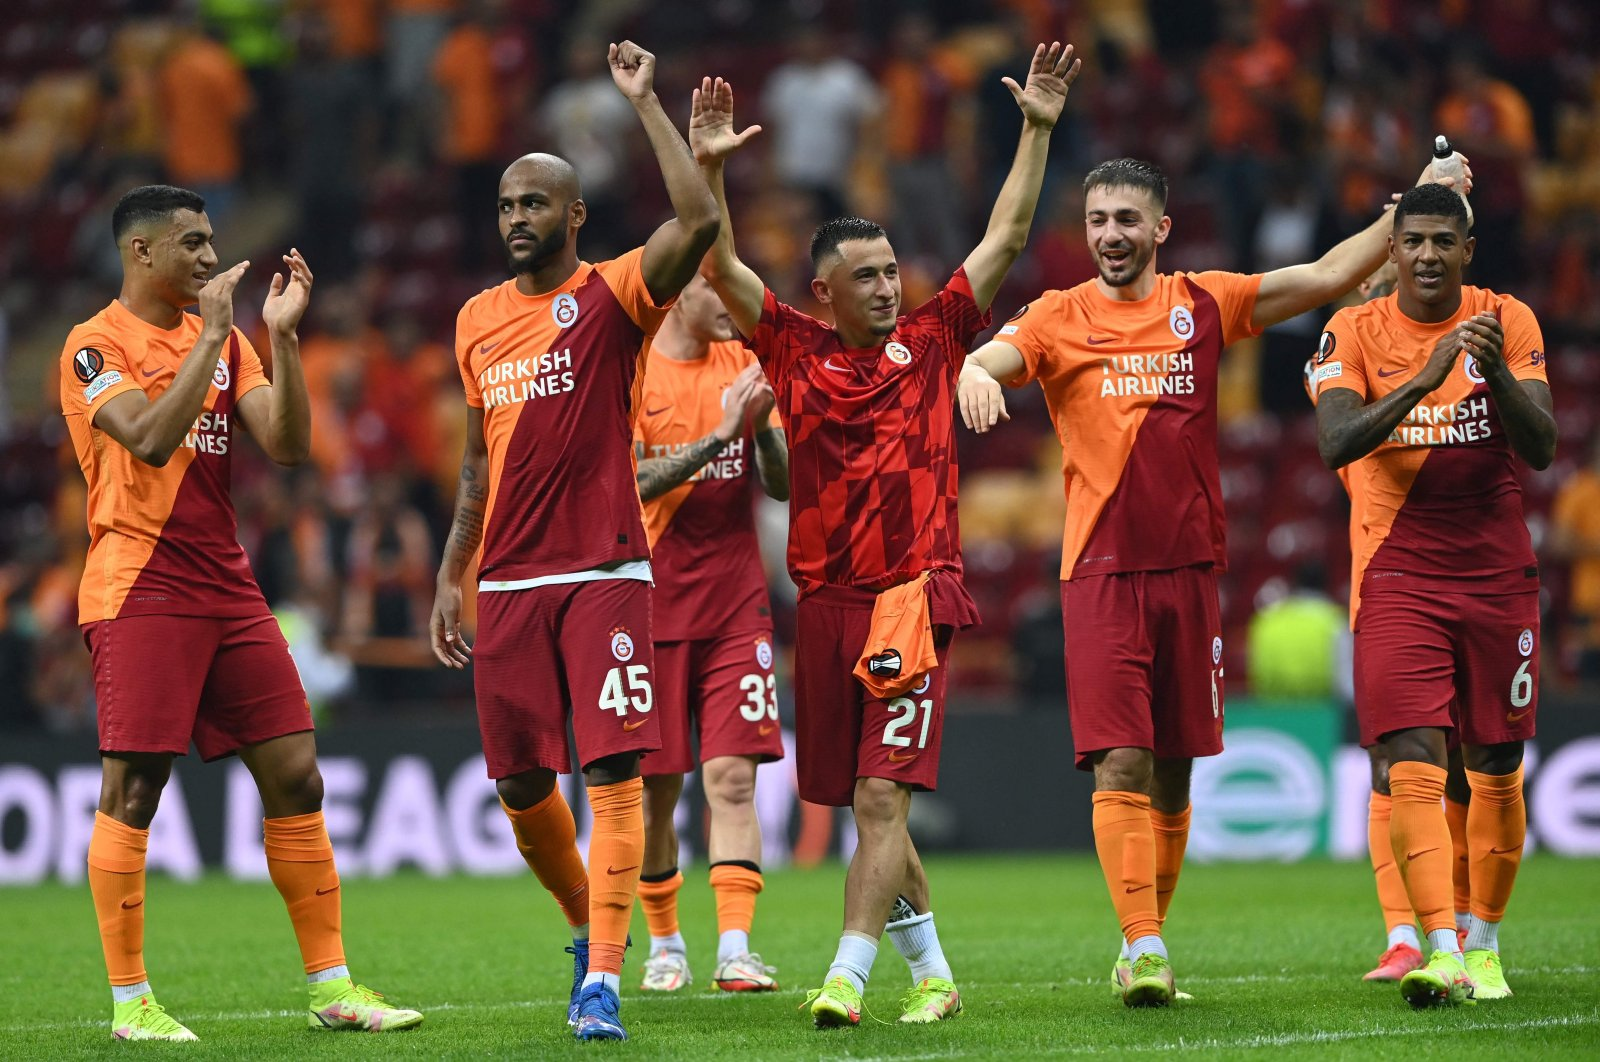 Galatasaray players celebrate after winning the UEFA Europa League group E football match between Galatasaray and Lazio at the Ali Sami Yen Sports Complex in Istanbul, Turkey, Sept. 16, 2021. (AFP Photo)